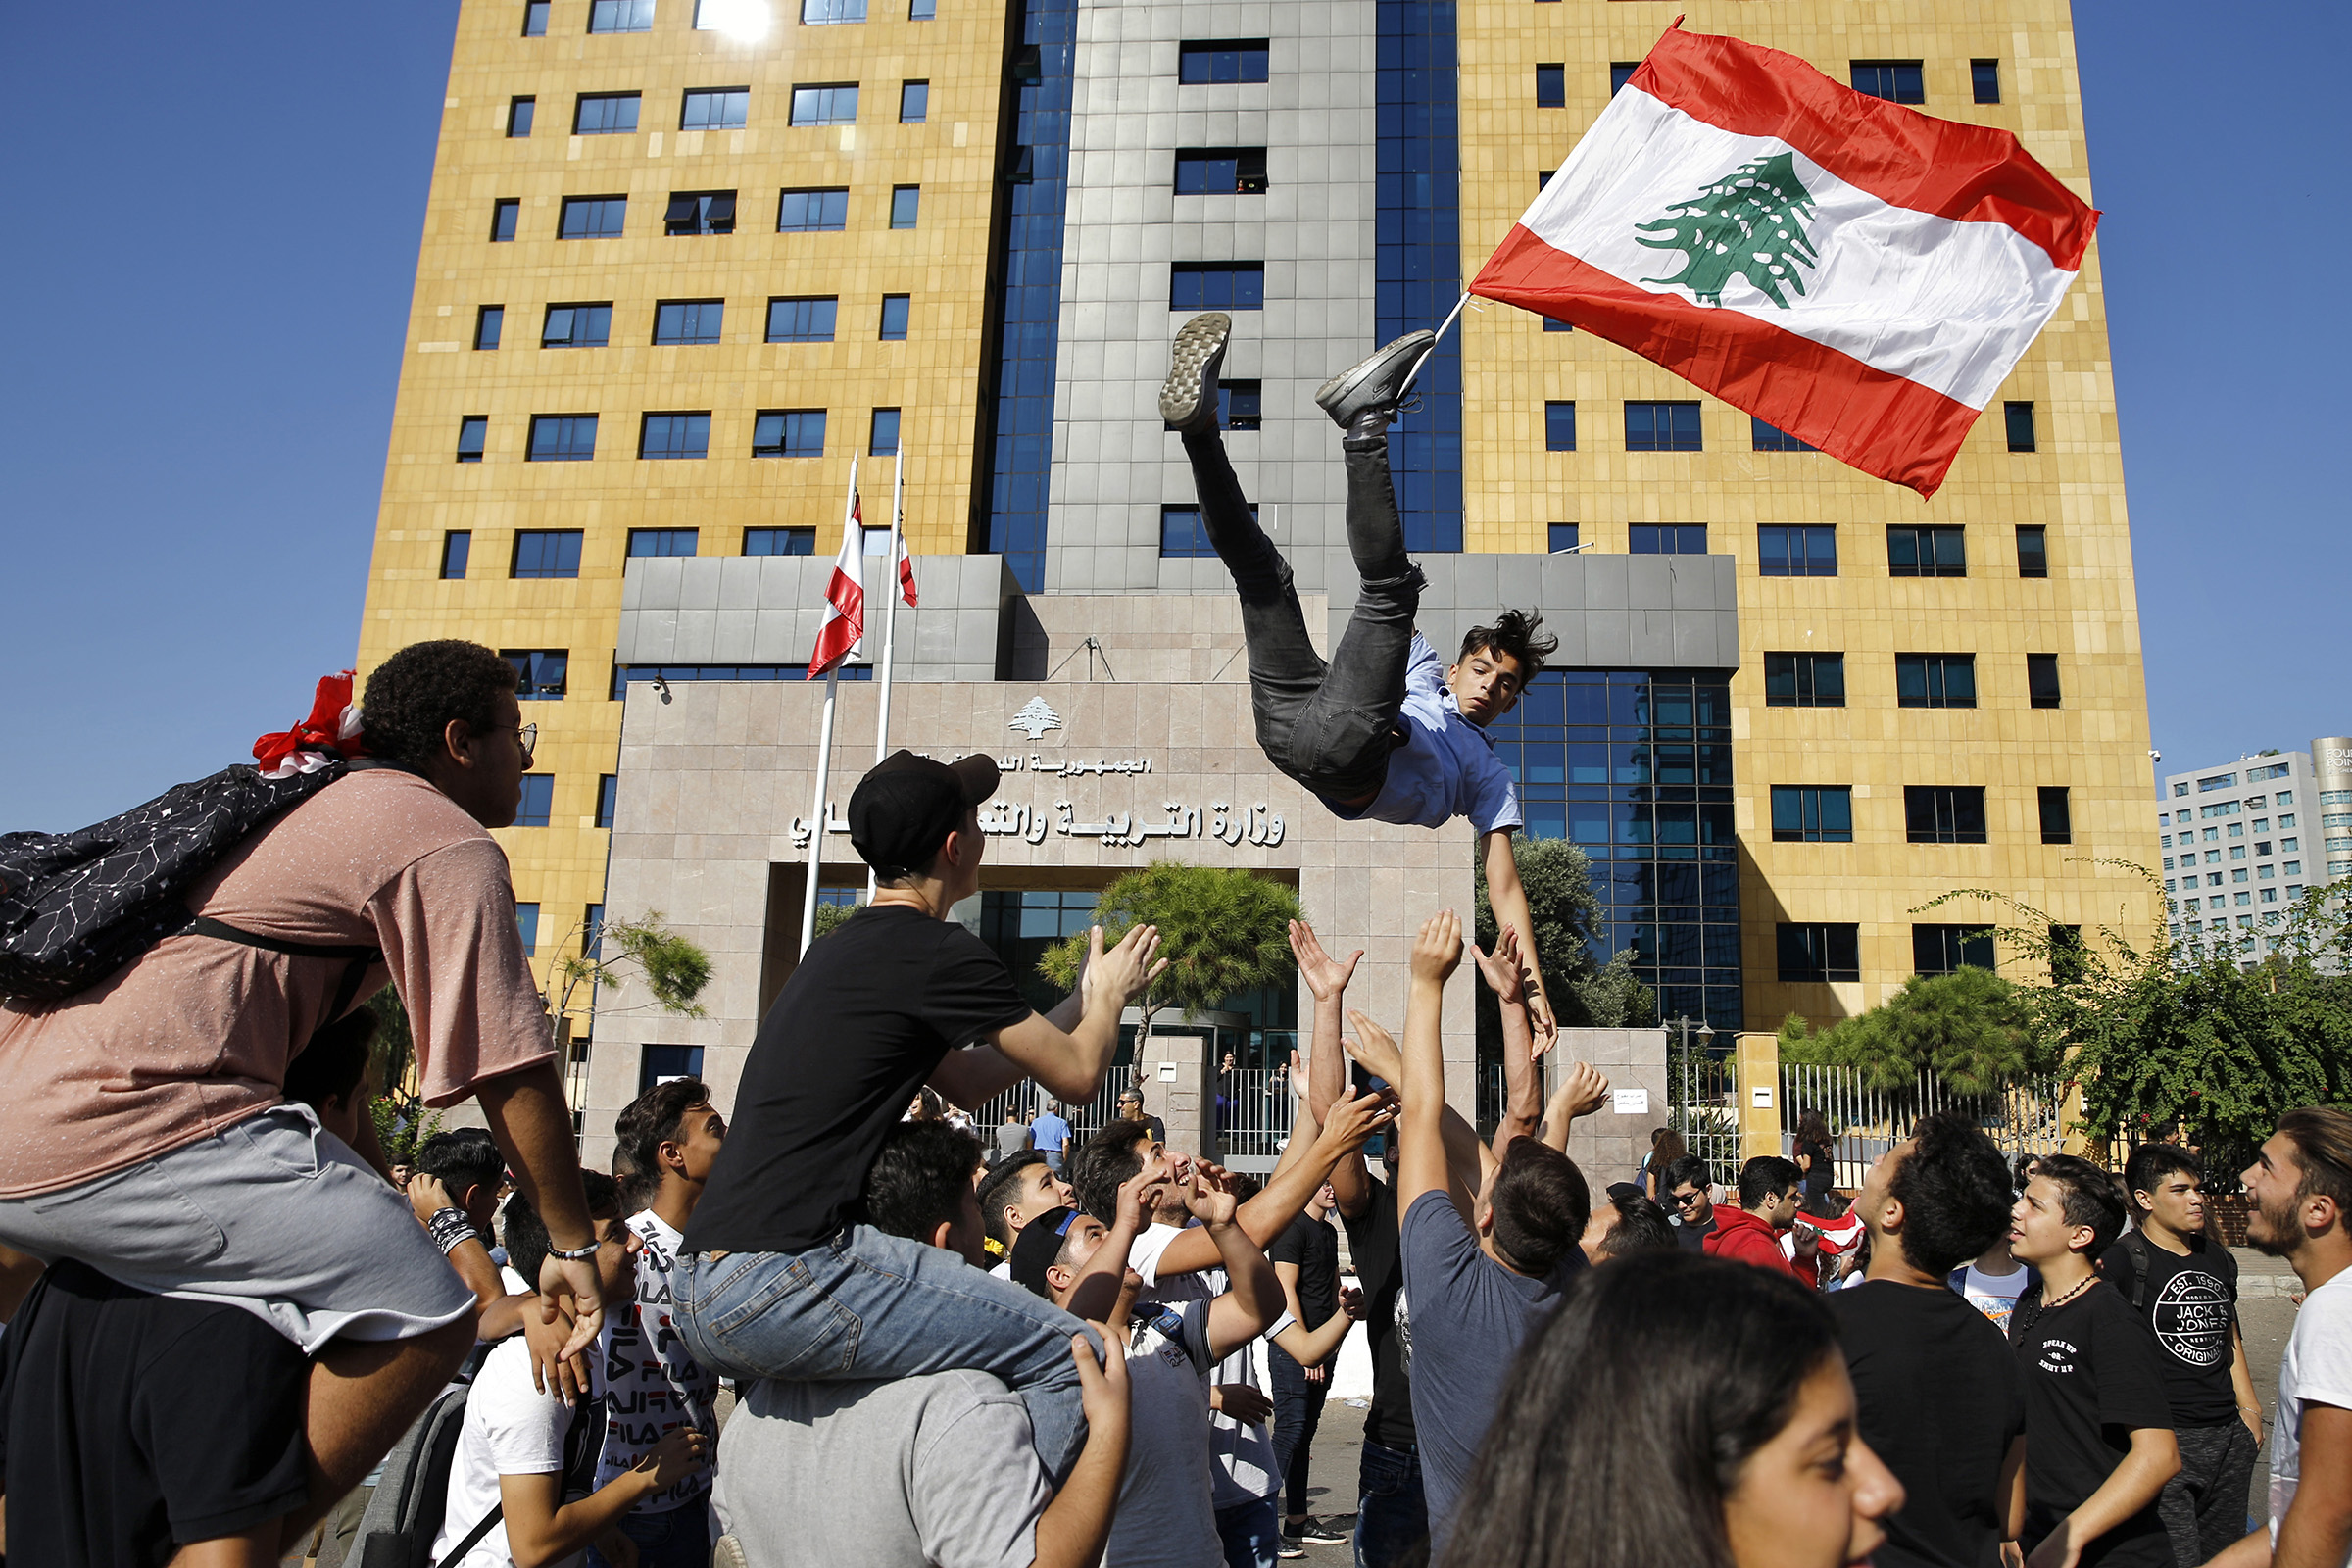 A student protester is thrown into the air by his colleagues as he holds a Lebanese flag during ongoing protests against the Lebanese government, in front of the education ministry in Beirut, Lebanon, on Nov. 12, 2019.